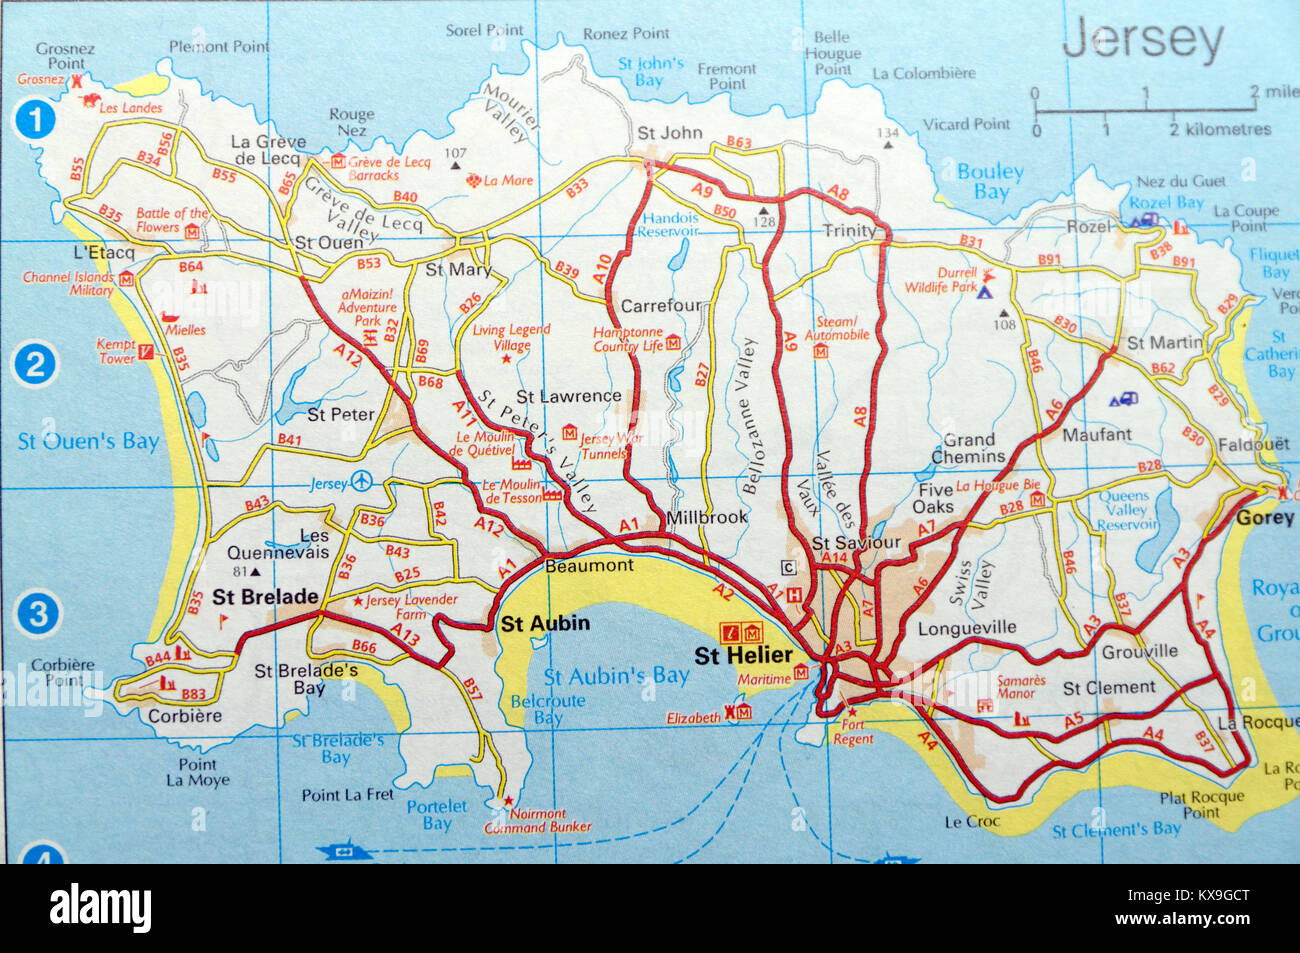 Road Map of Jersey Stock Photo: 171084840 - Alamy